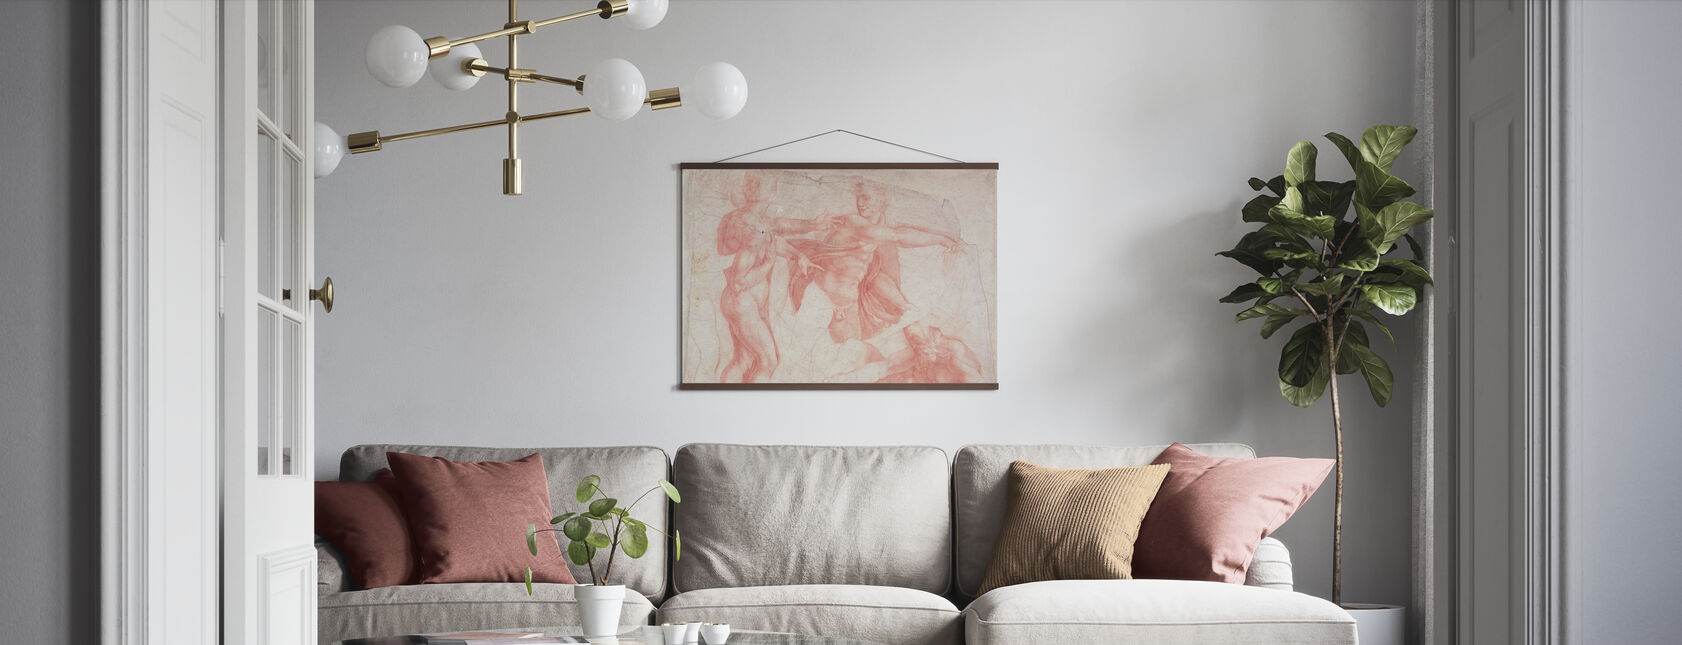 Studies of Male Nudes - Michelangelo Buonarroti - Poster - Living Room